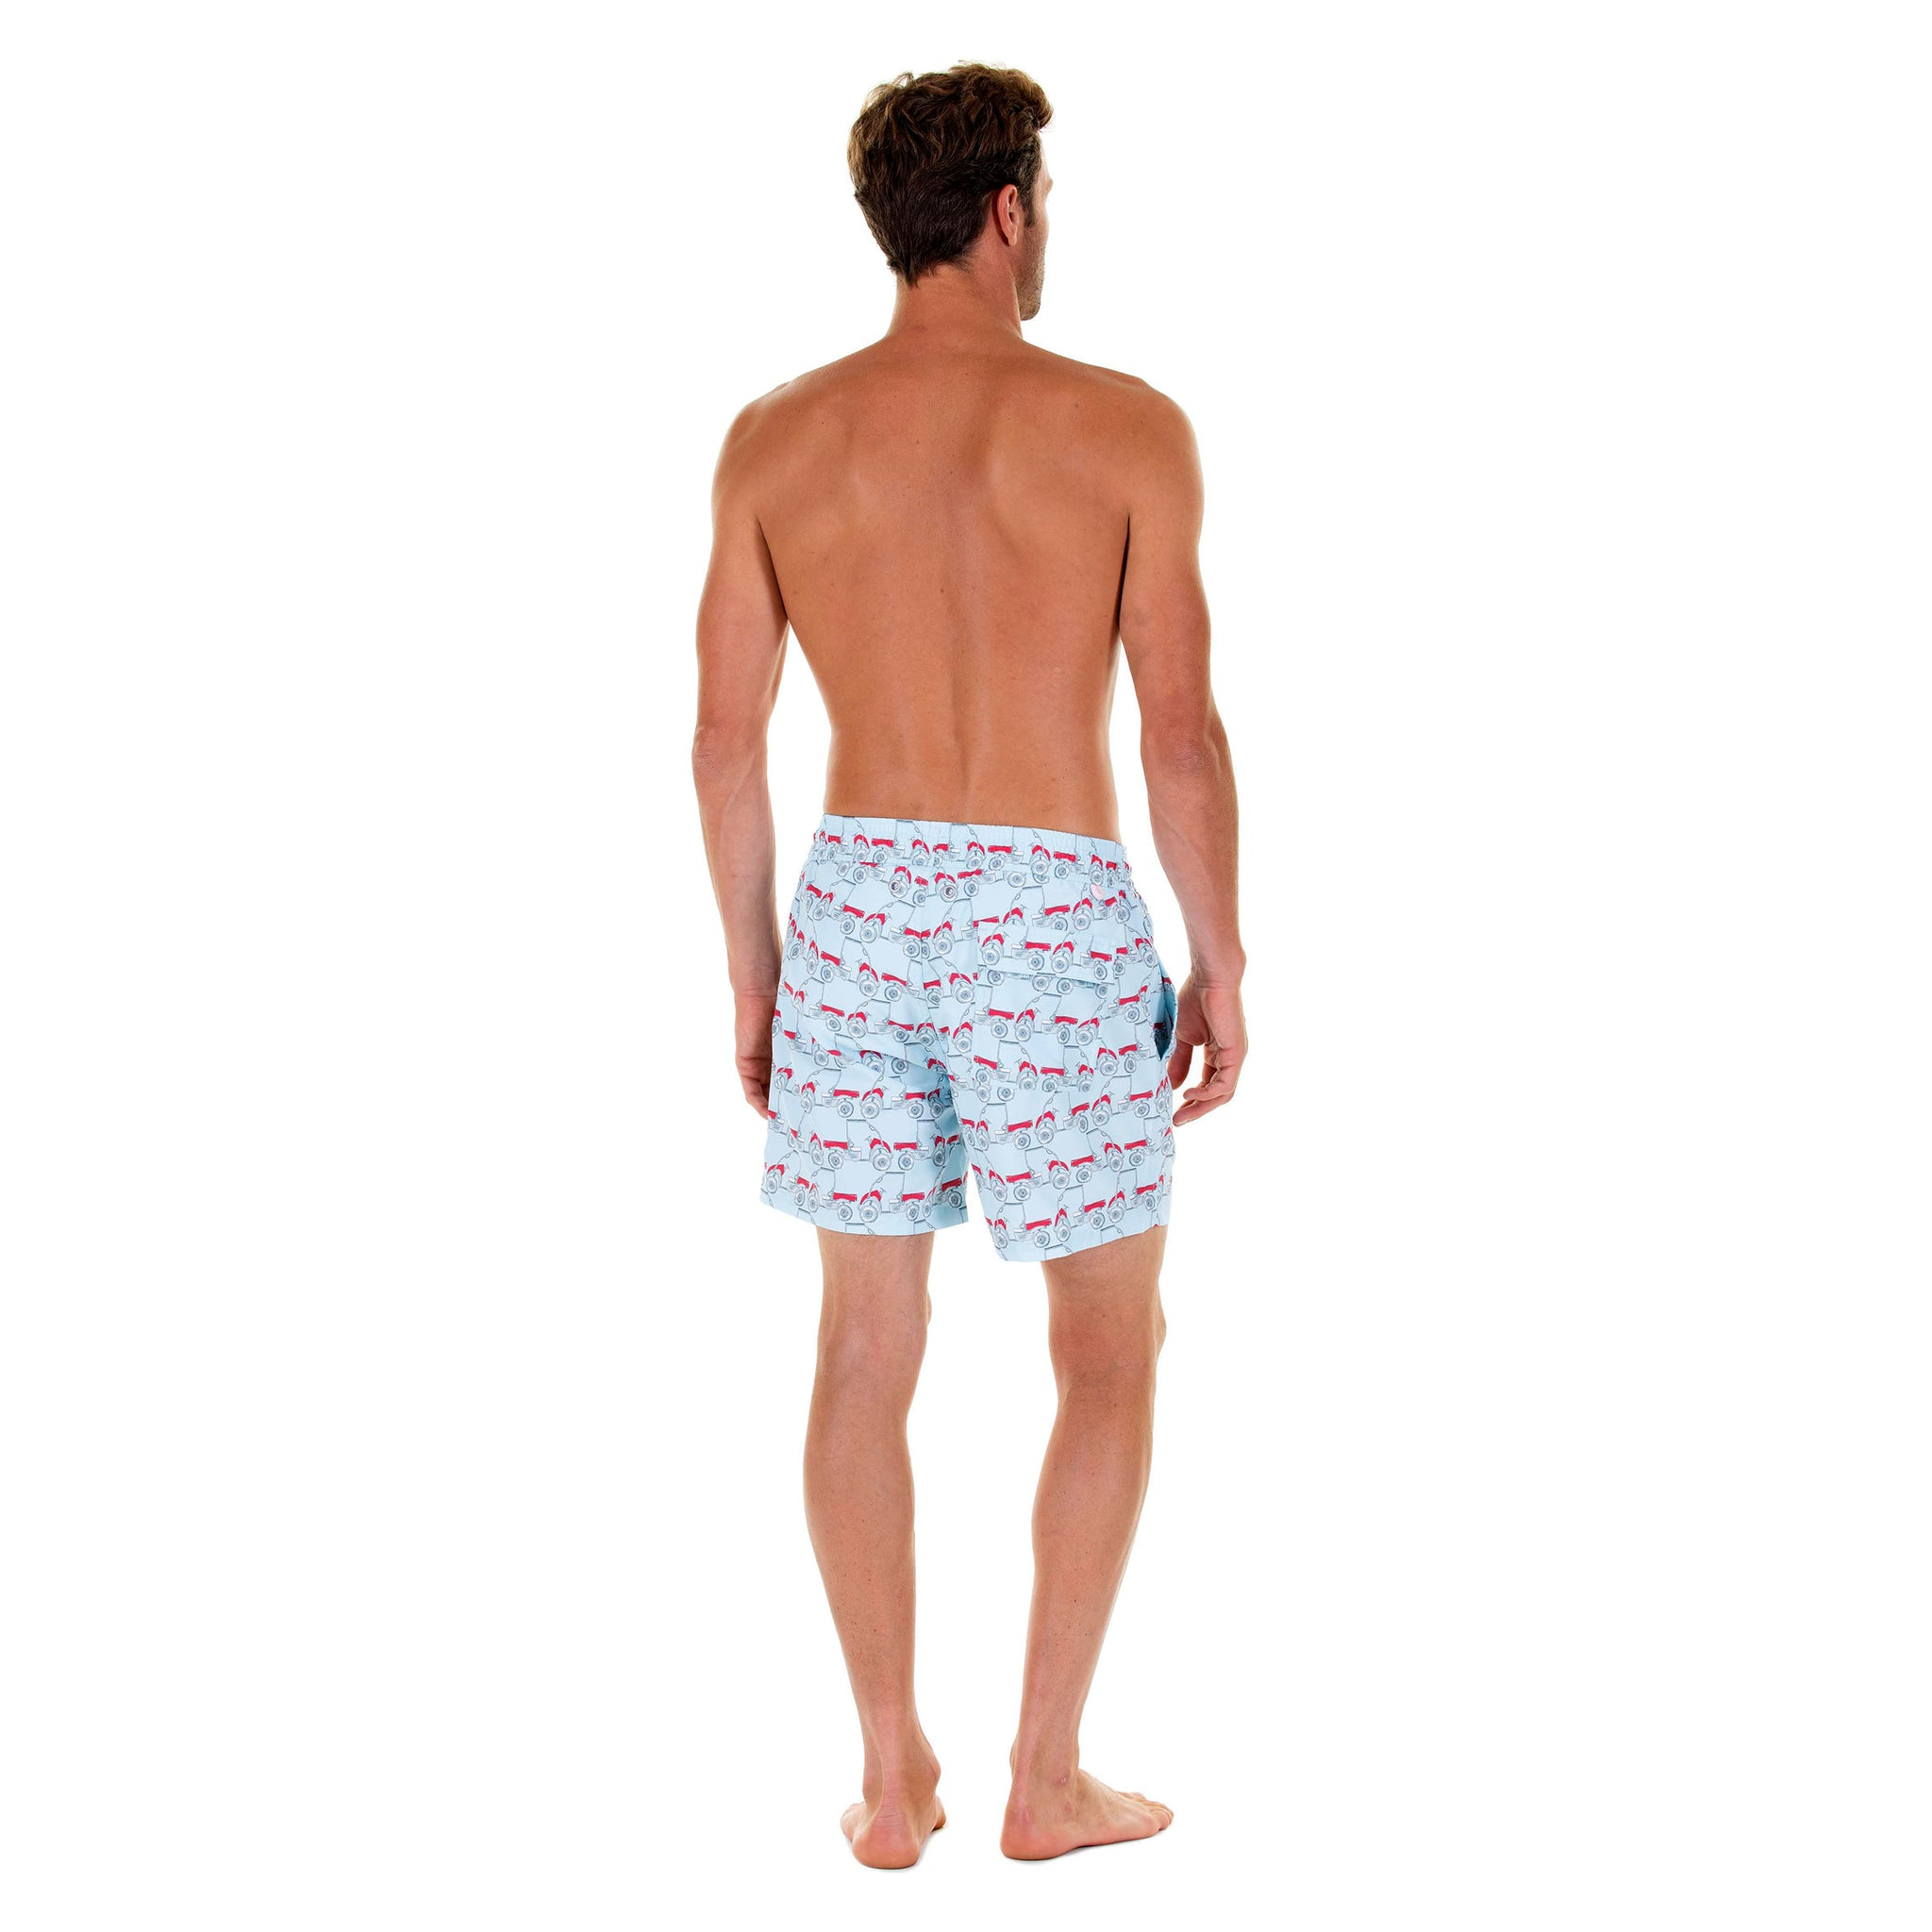 a9b49f9ef1d8 Mens swim trunks : MUSTIQUE MULE - RED back. Comfortable, practical &  stylish